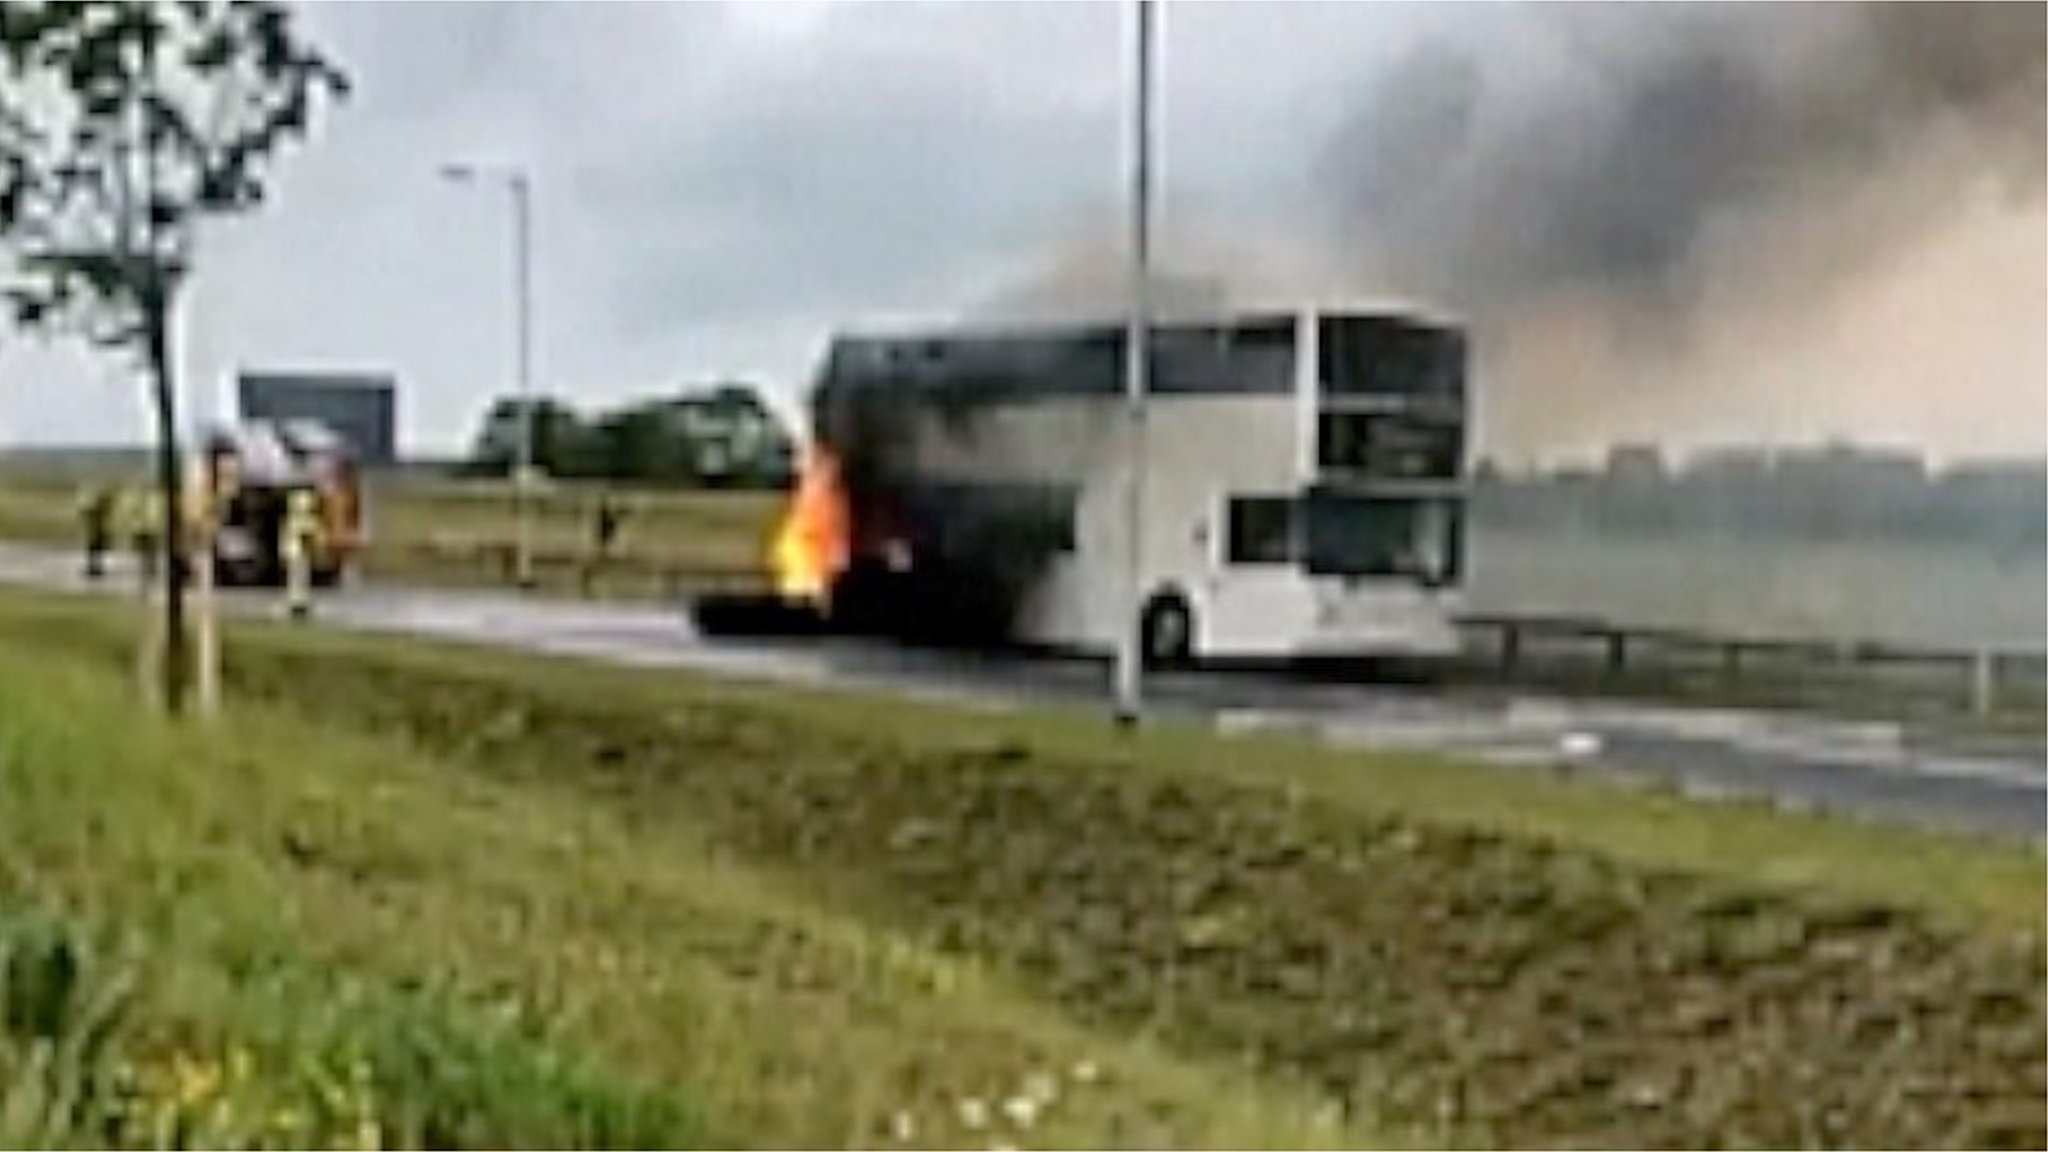 Children evacuated from Bury St Edmunds bus fire